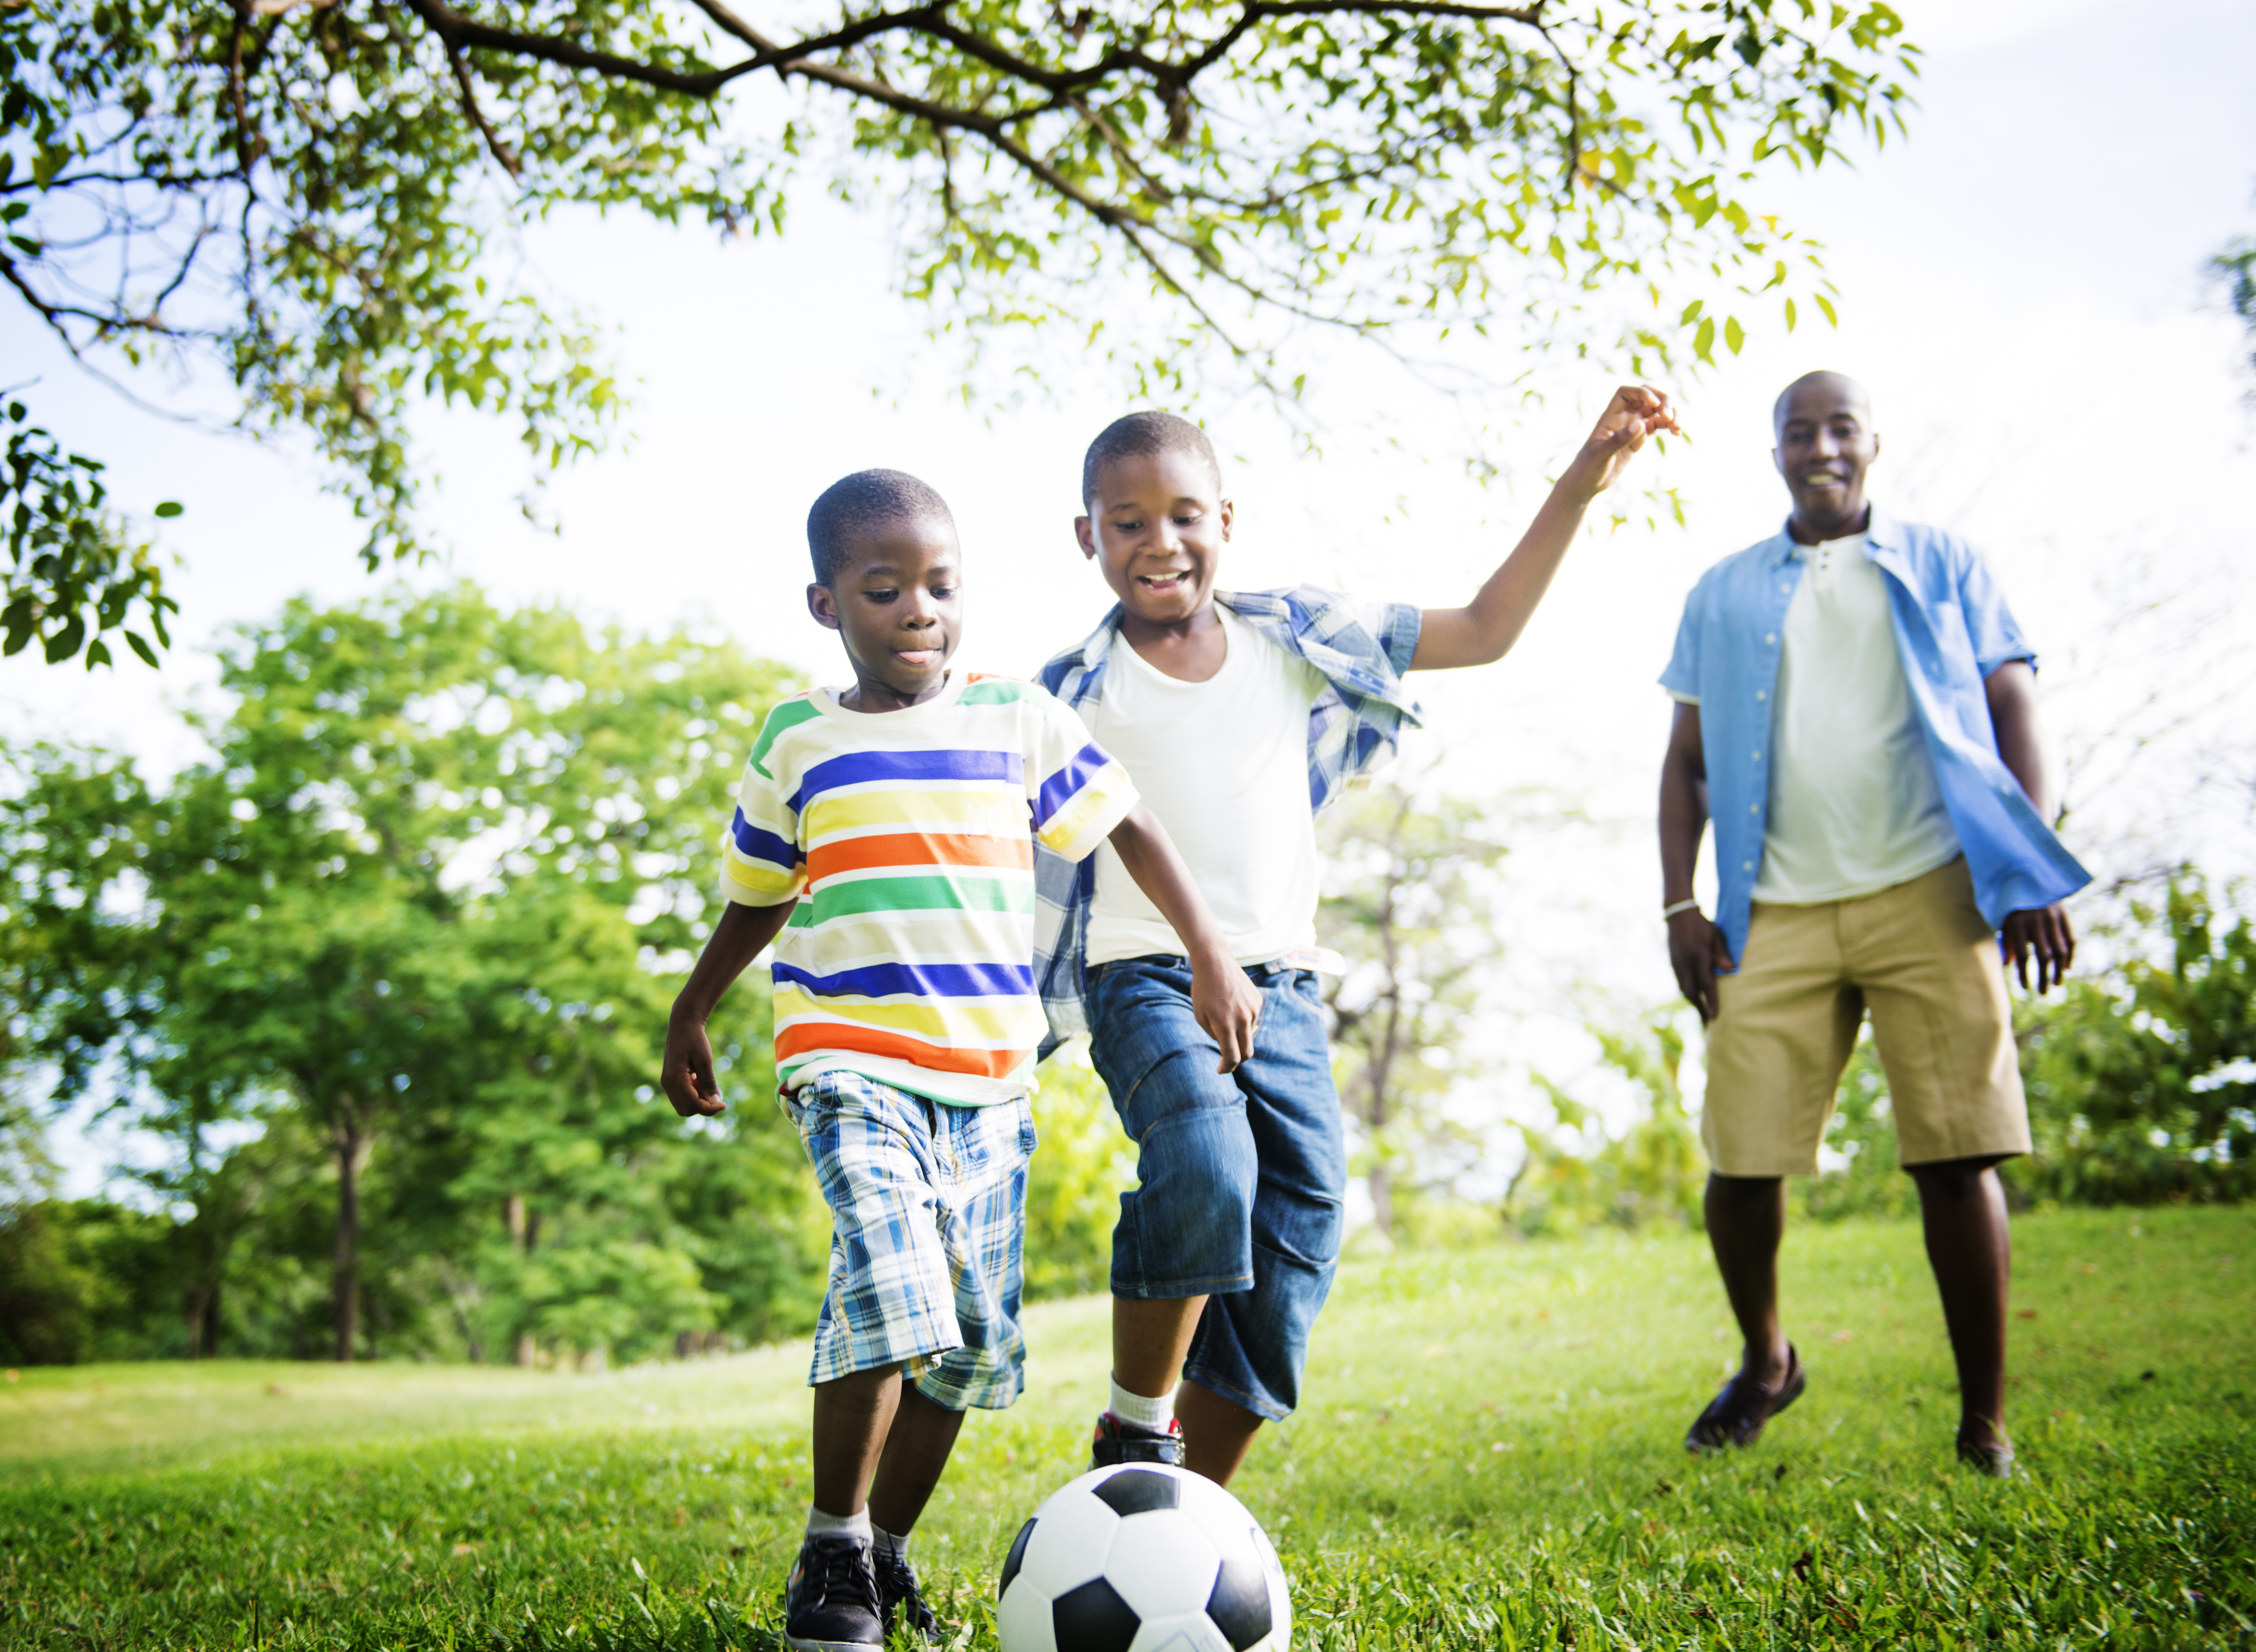 10 Reasons to Schedule a Play Date with Your Kids